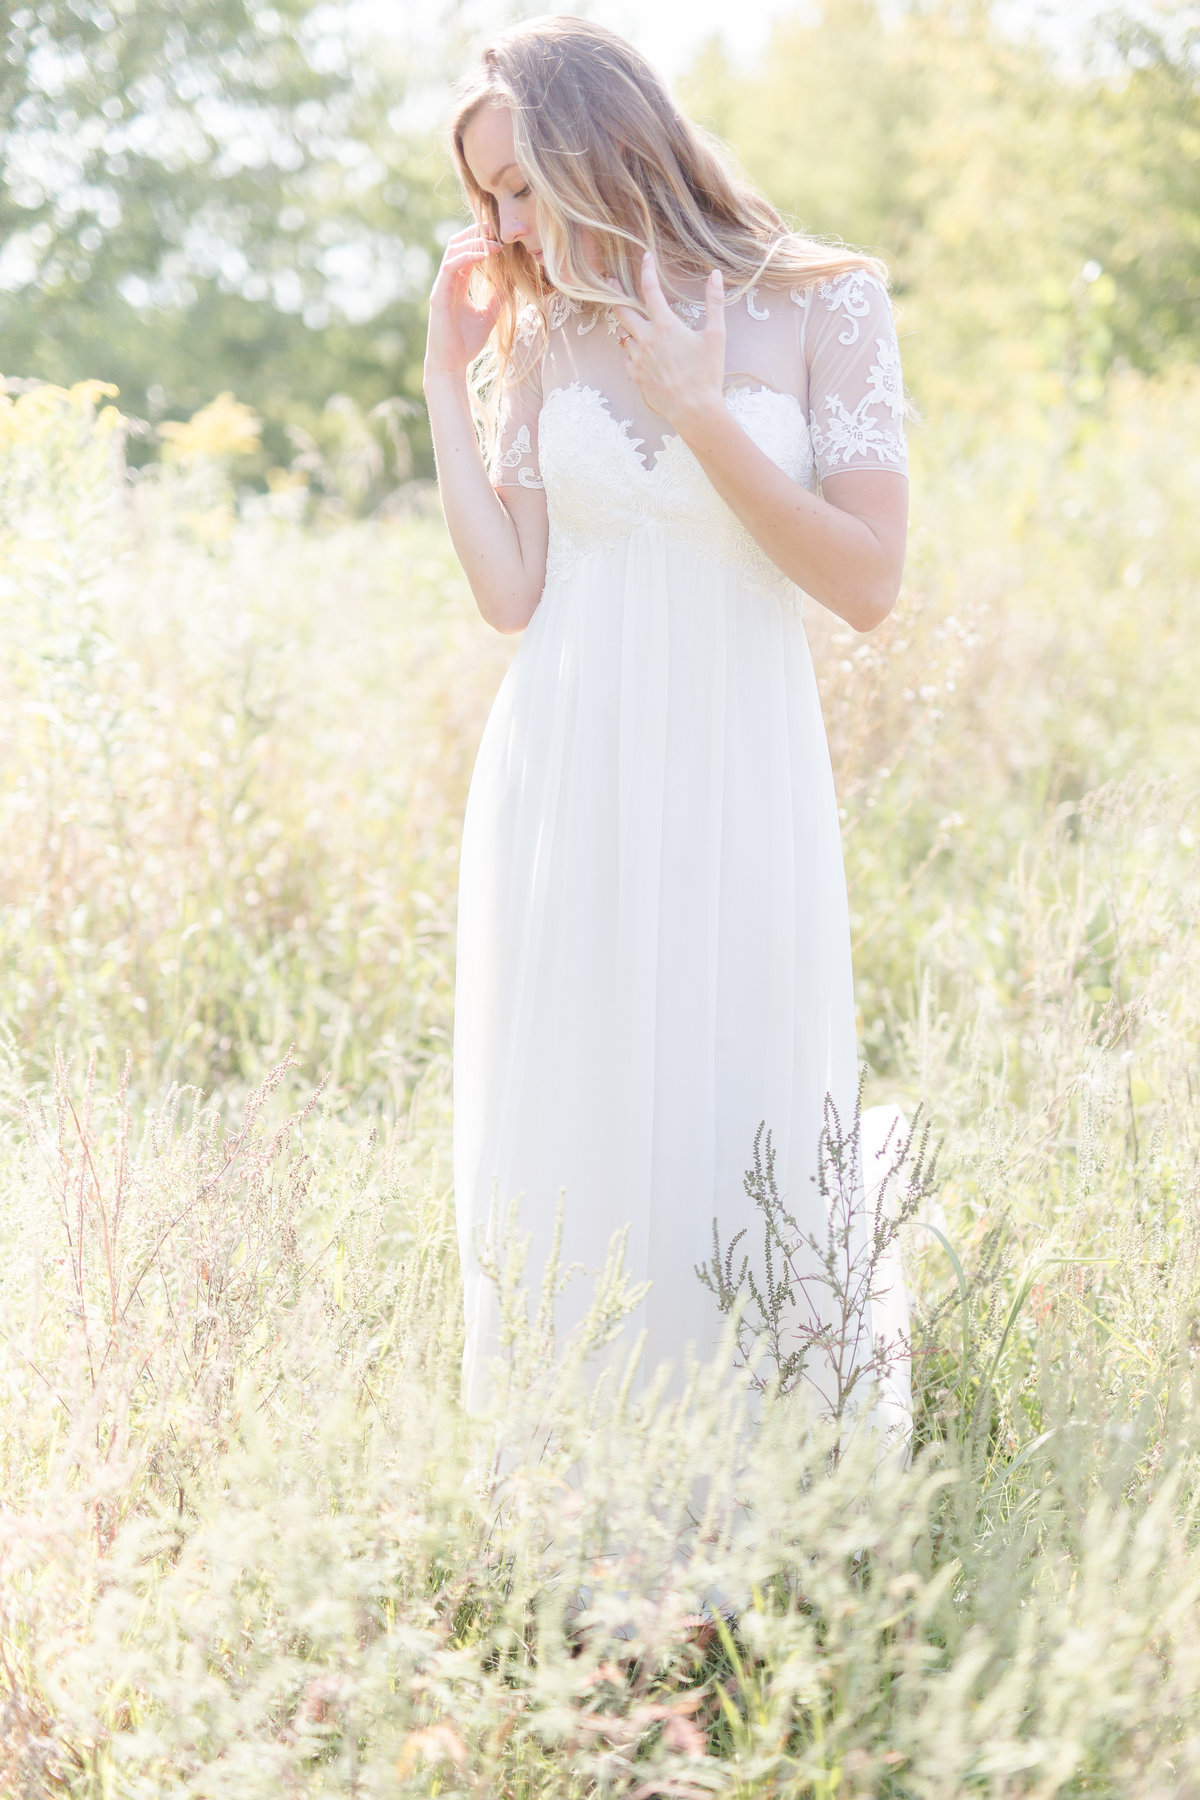 Kailey - Styled Shoot - New Edits-126